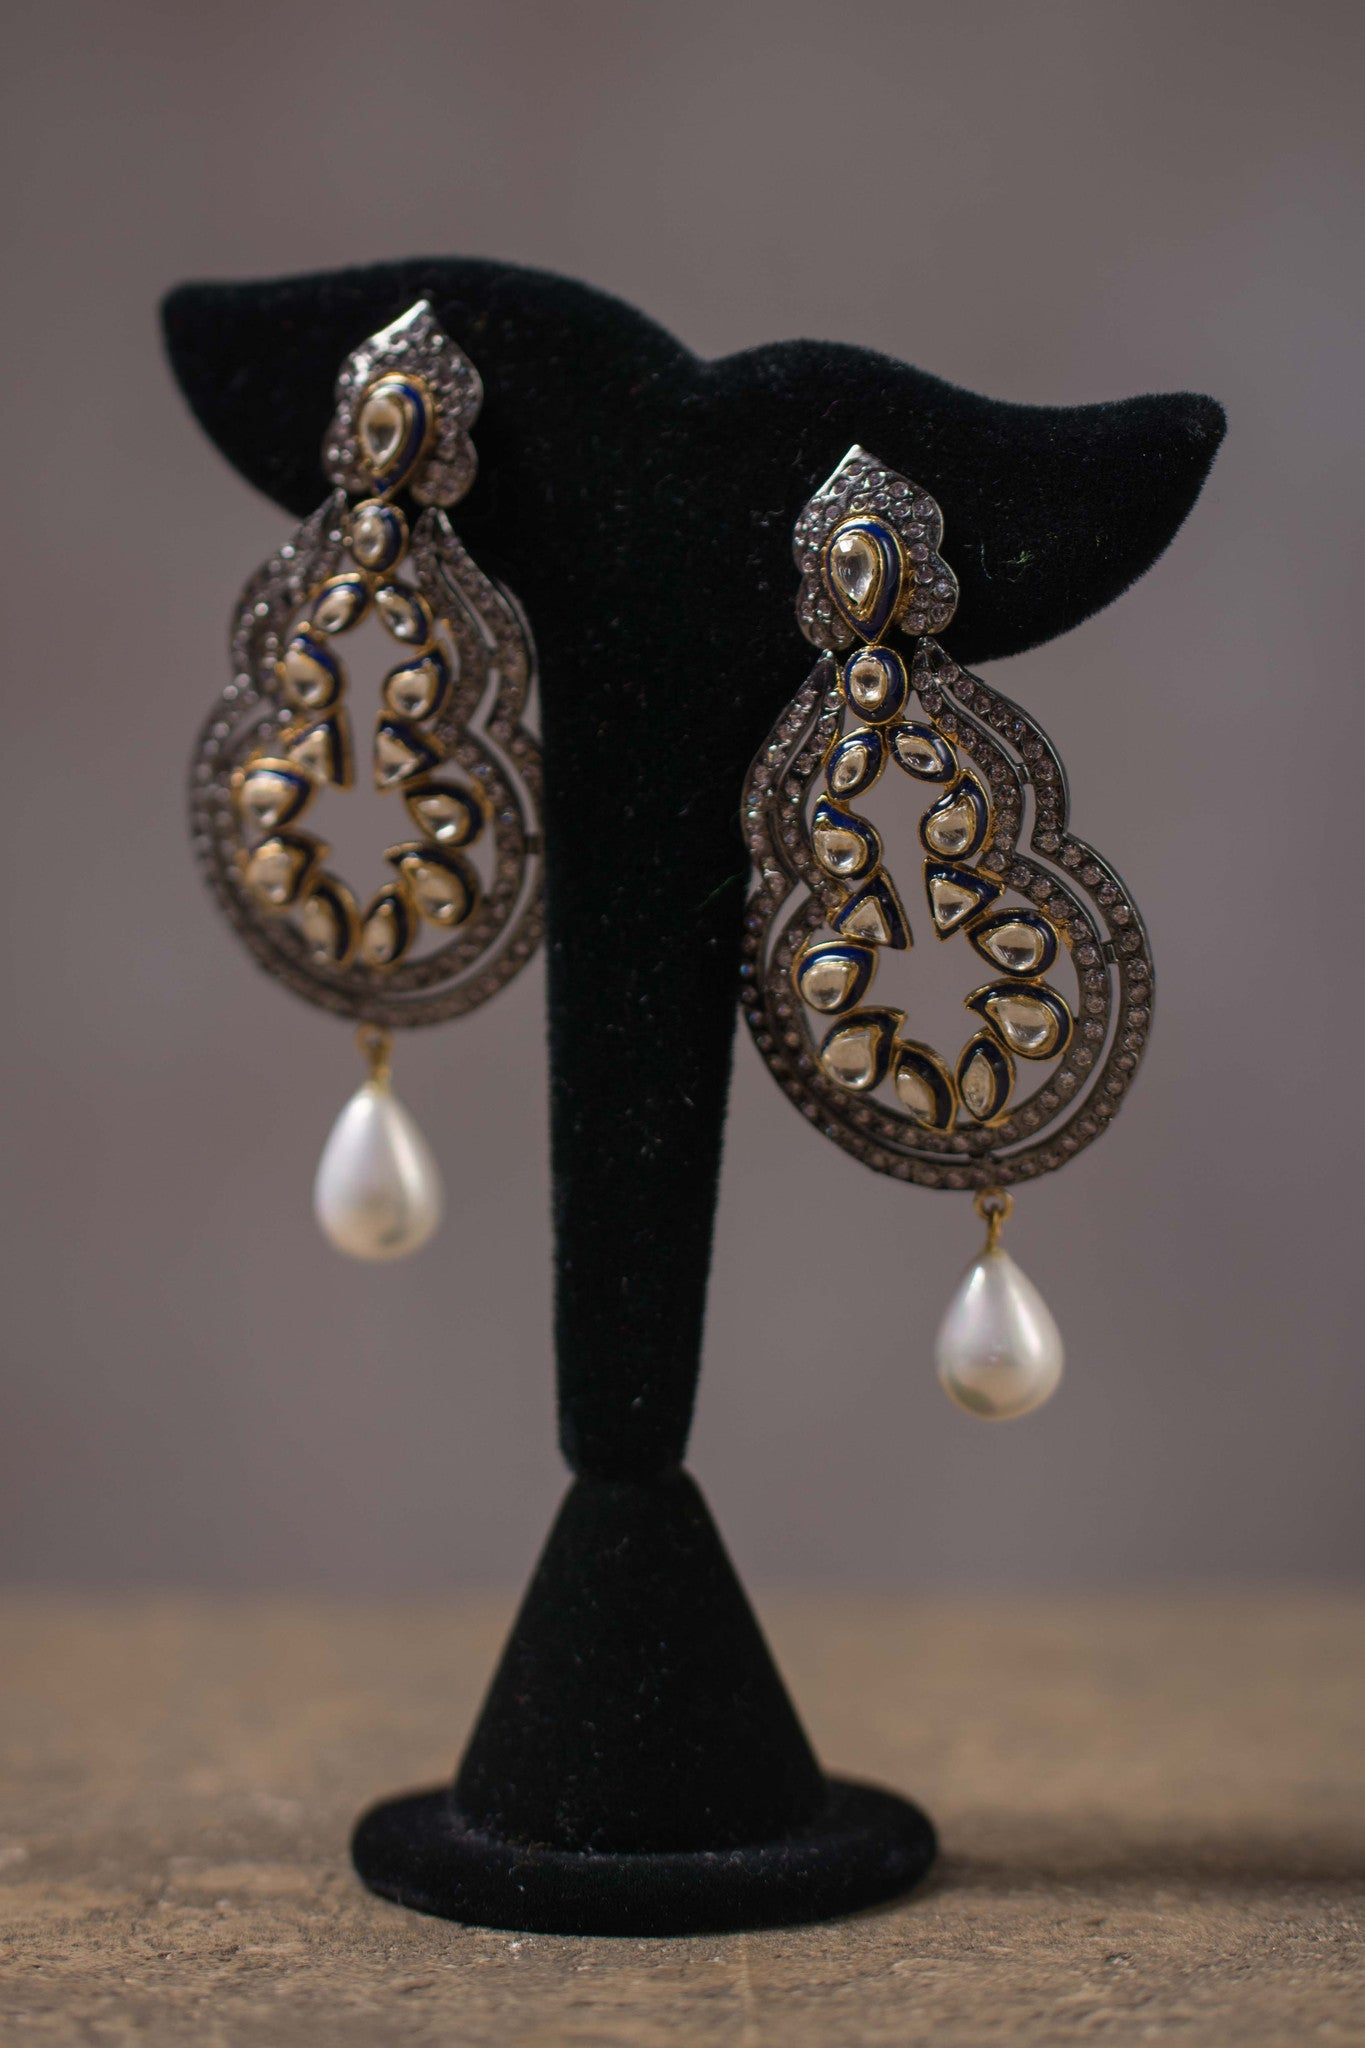 20a065-silver-pearl-and-zircon-earrings